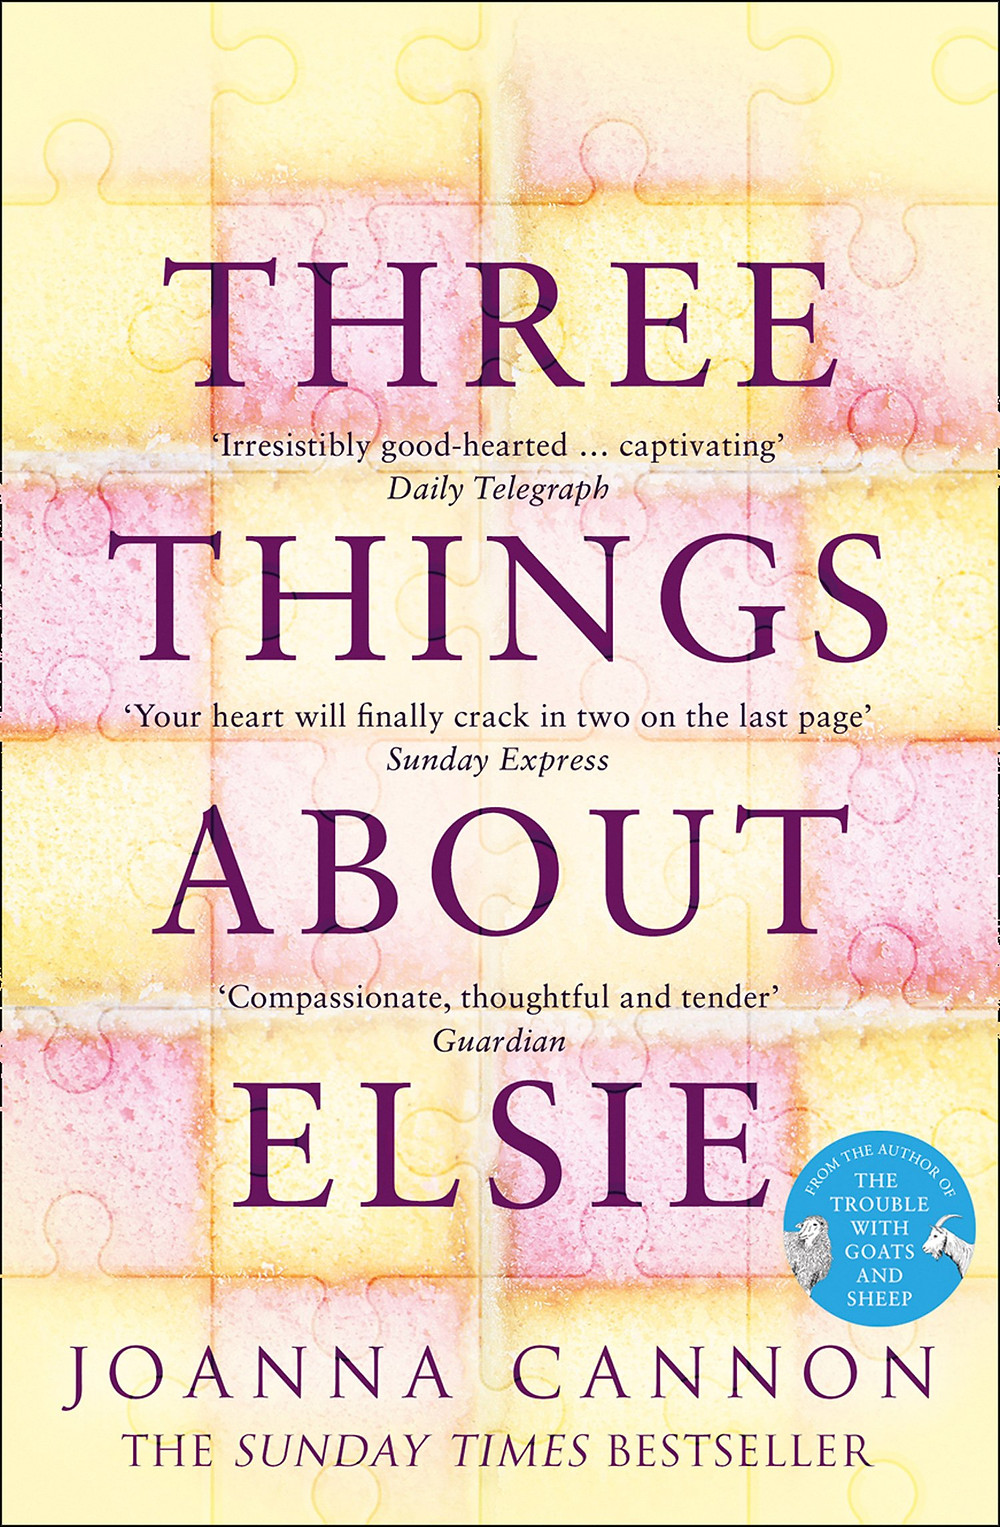 Three Things About Elsie, by Joanna Cannon. Review by Barbara Copperthwaite